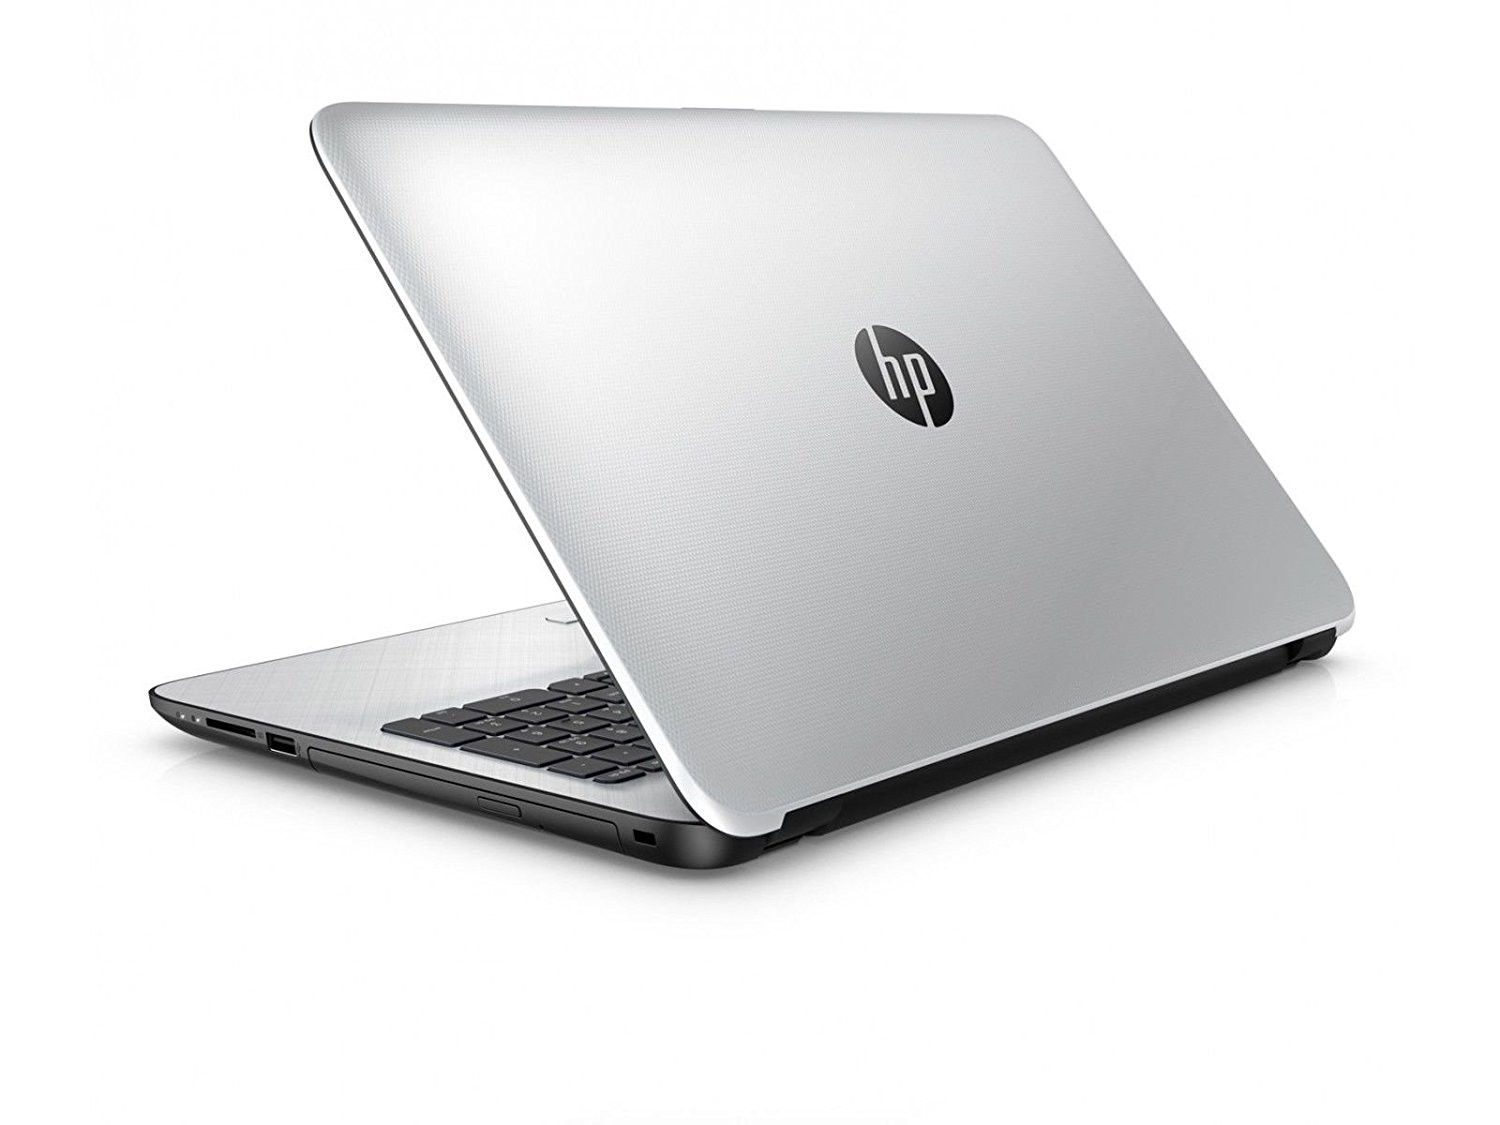 White HP 15ay022na 15.6 Laptop Intel Pentium N3710, 4GB RAM, 1TB HDD, DVDRW, Bluetooth 4.0